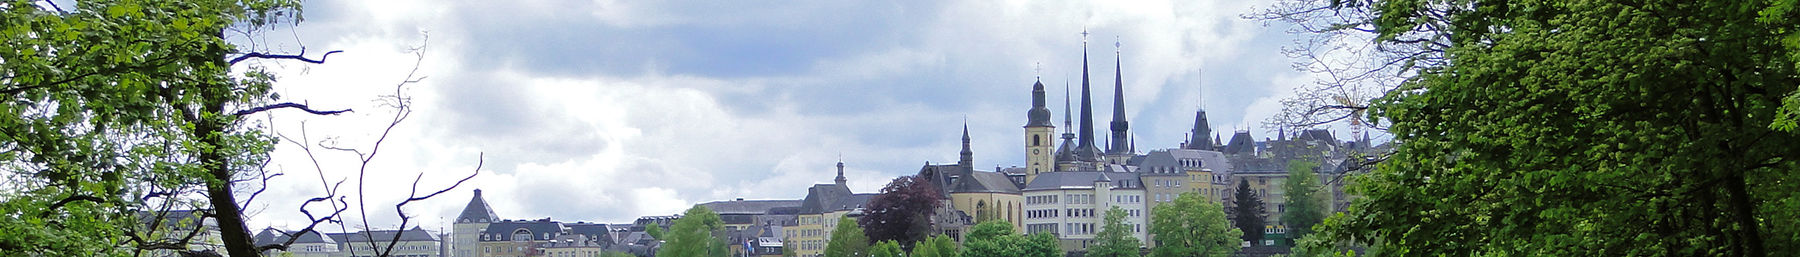 Luxembourg City banner.jpg